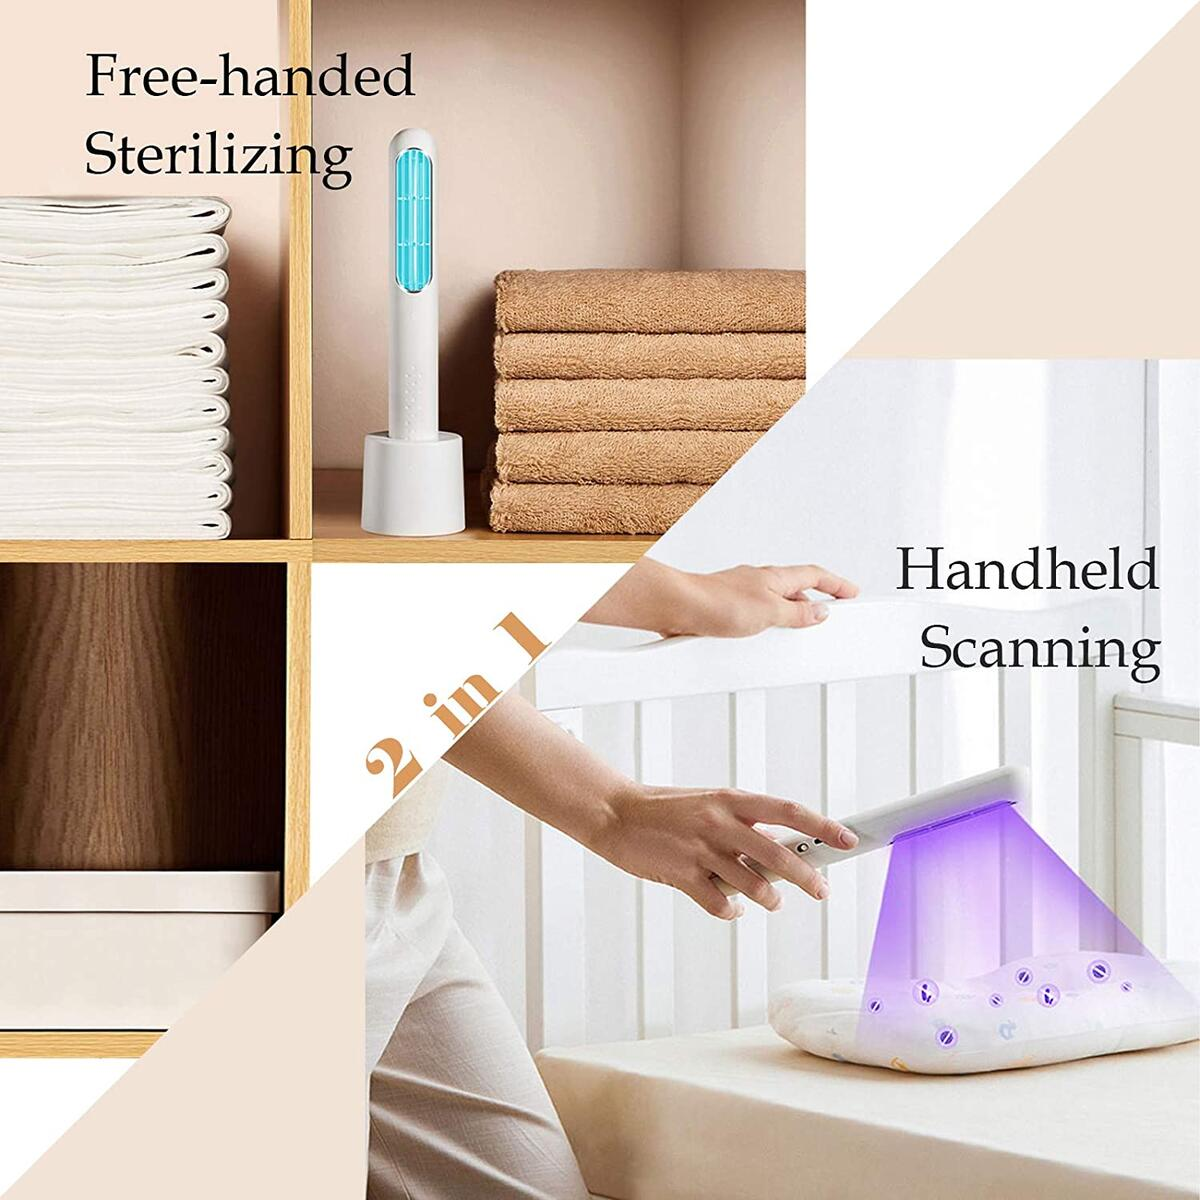 UV Light Sanitizer Wand, Portable UV-C Light Sterilizer, Disinfecting Handheld Ultraviolet Light Sanitizer Lamp Chargeable for Travel Car Home Hotel Baby Toys Phone Kills 99.9% of Germs & Viruses